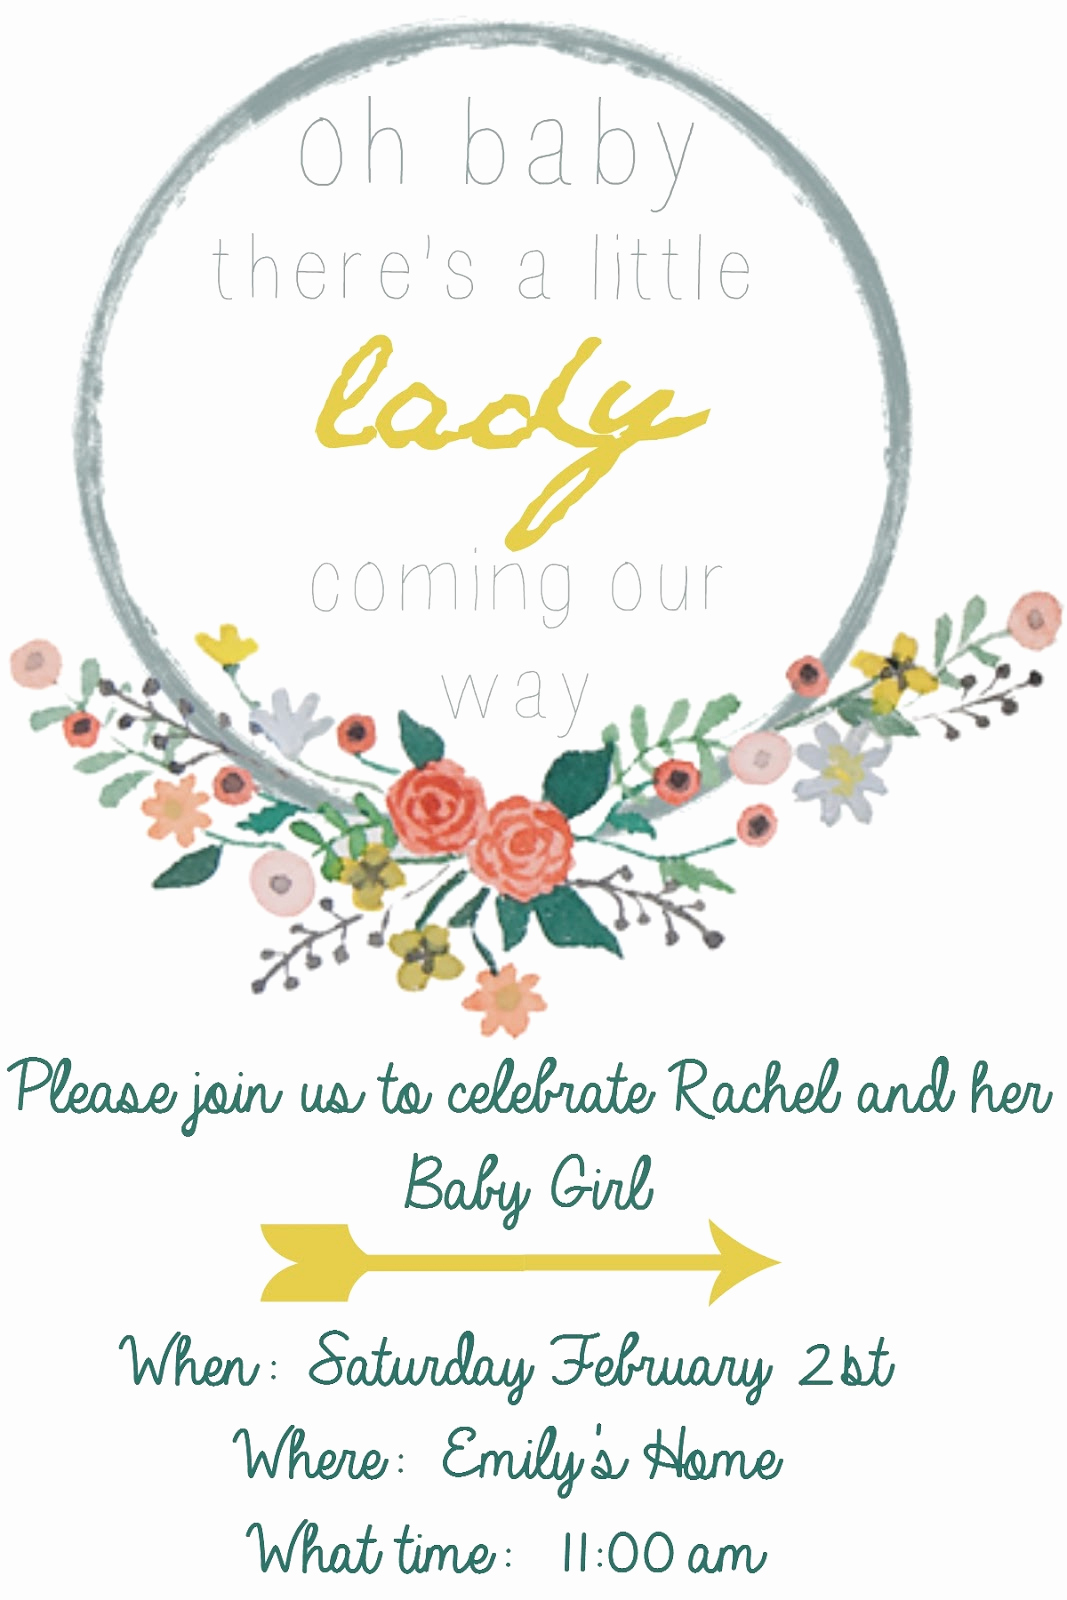 Free Baby Shower Invitation Templates Beautiful Emmy In Her Element Free Baby Shower Invitation Template